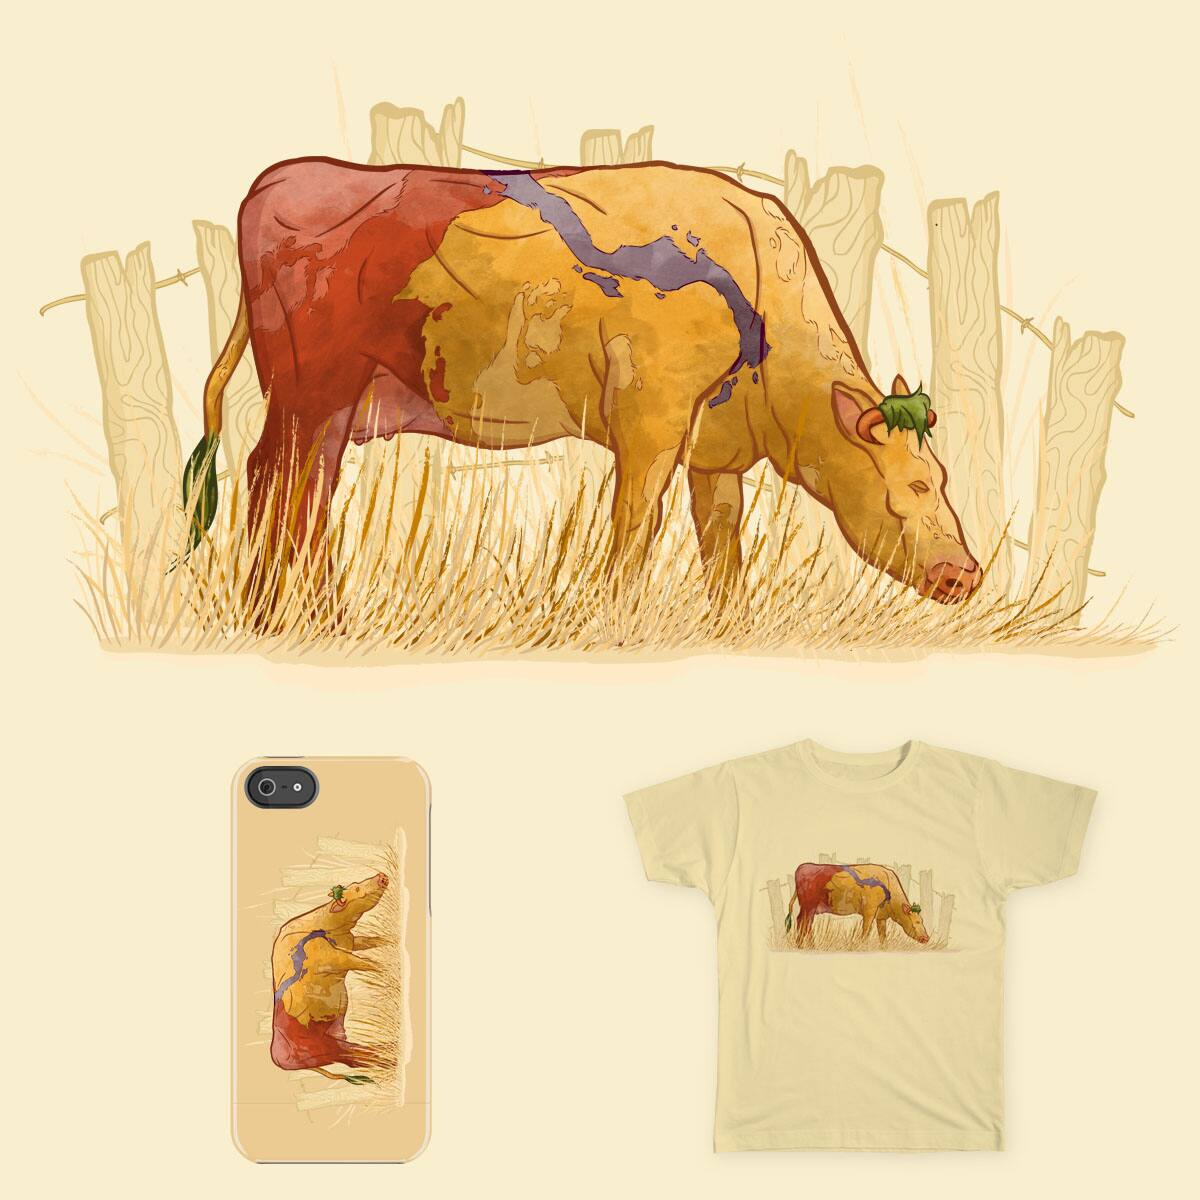 A Grazing Heffer by RoseMakesArt on Threadless